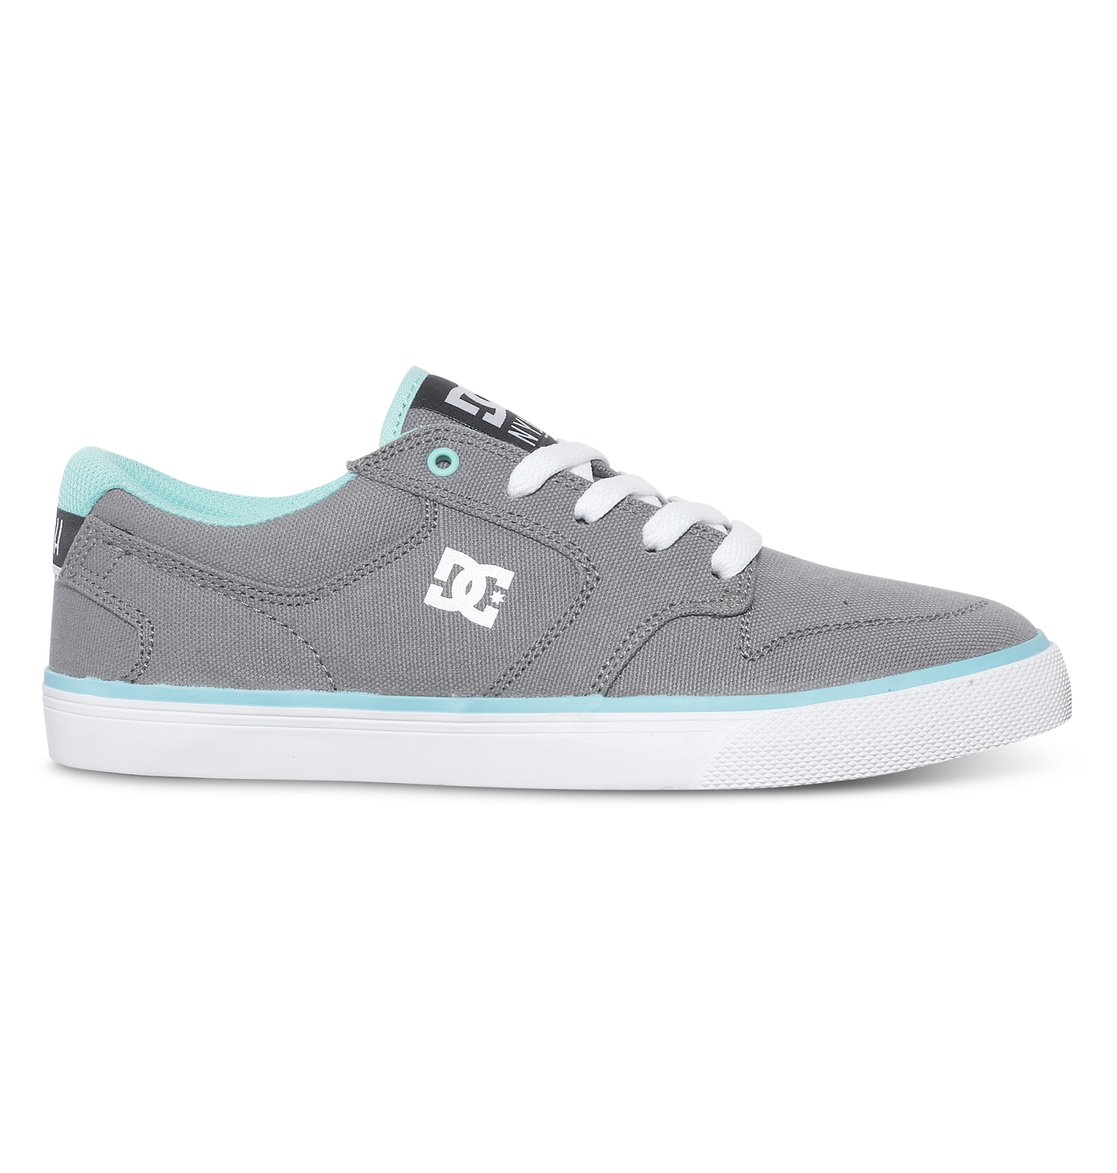 Zapatos DC Shoes para mujer RoiX6mb